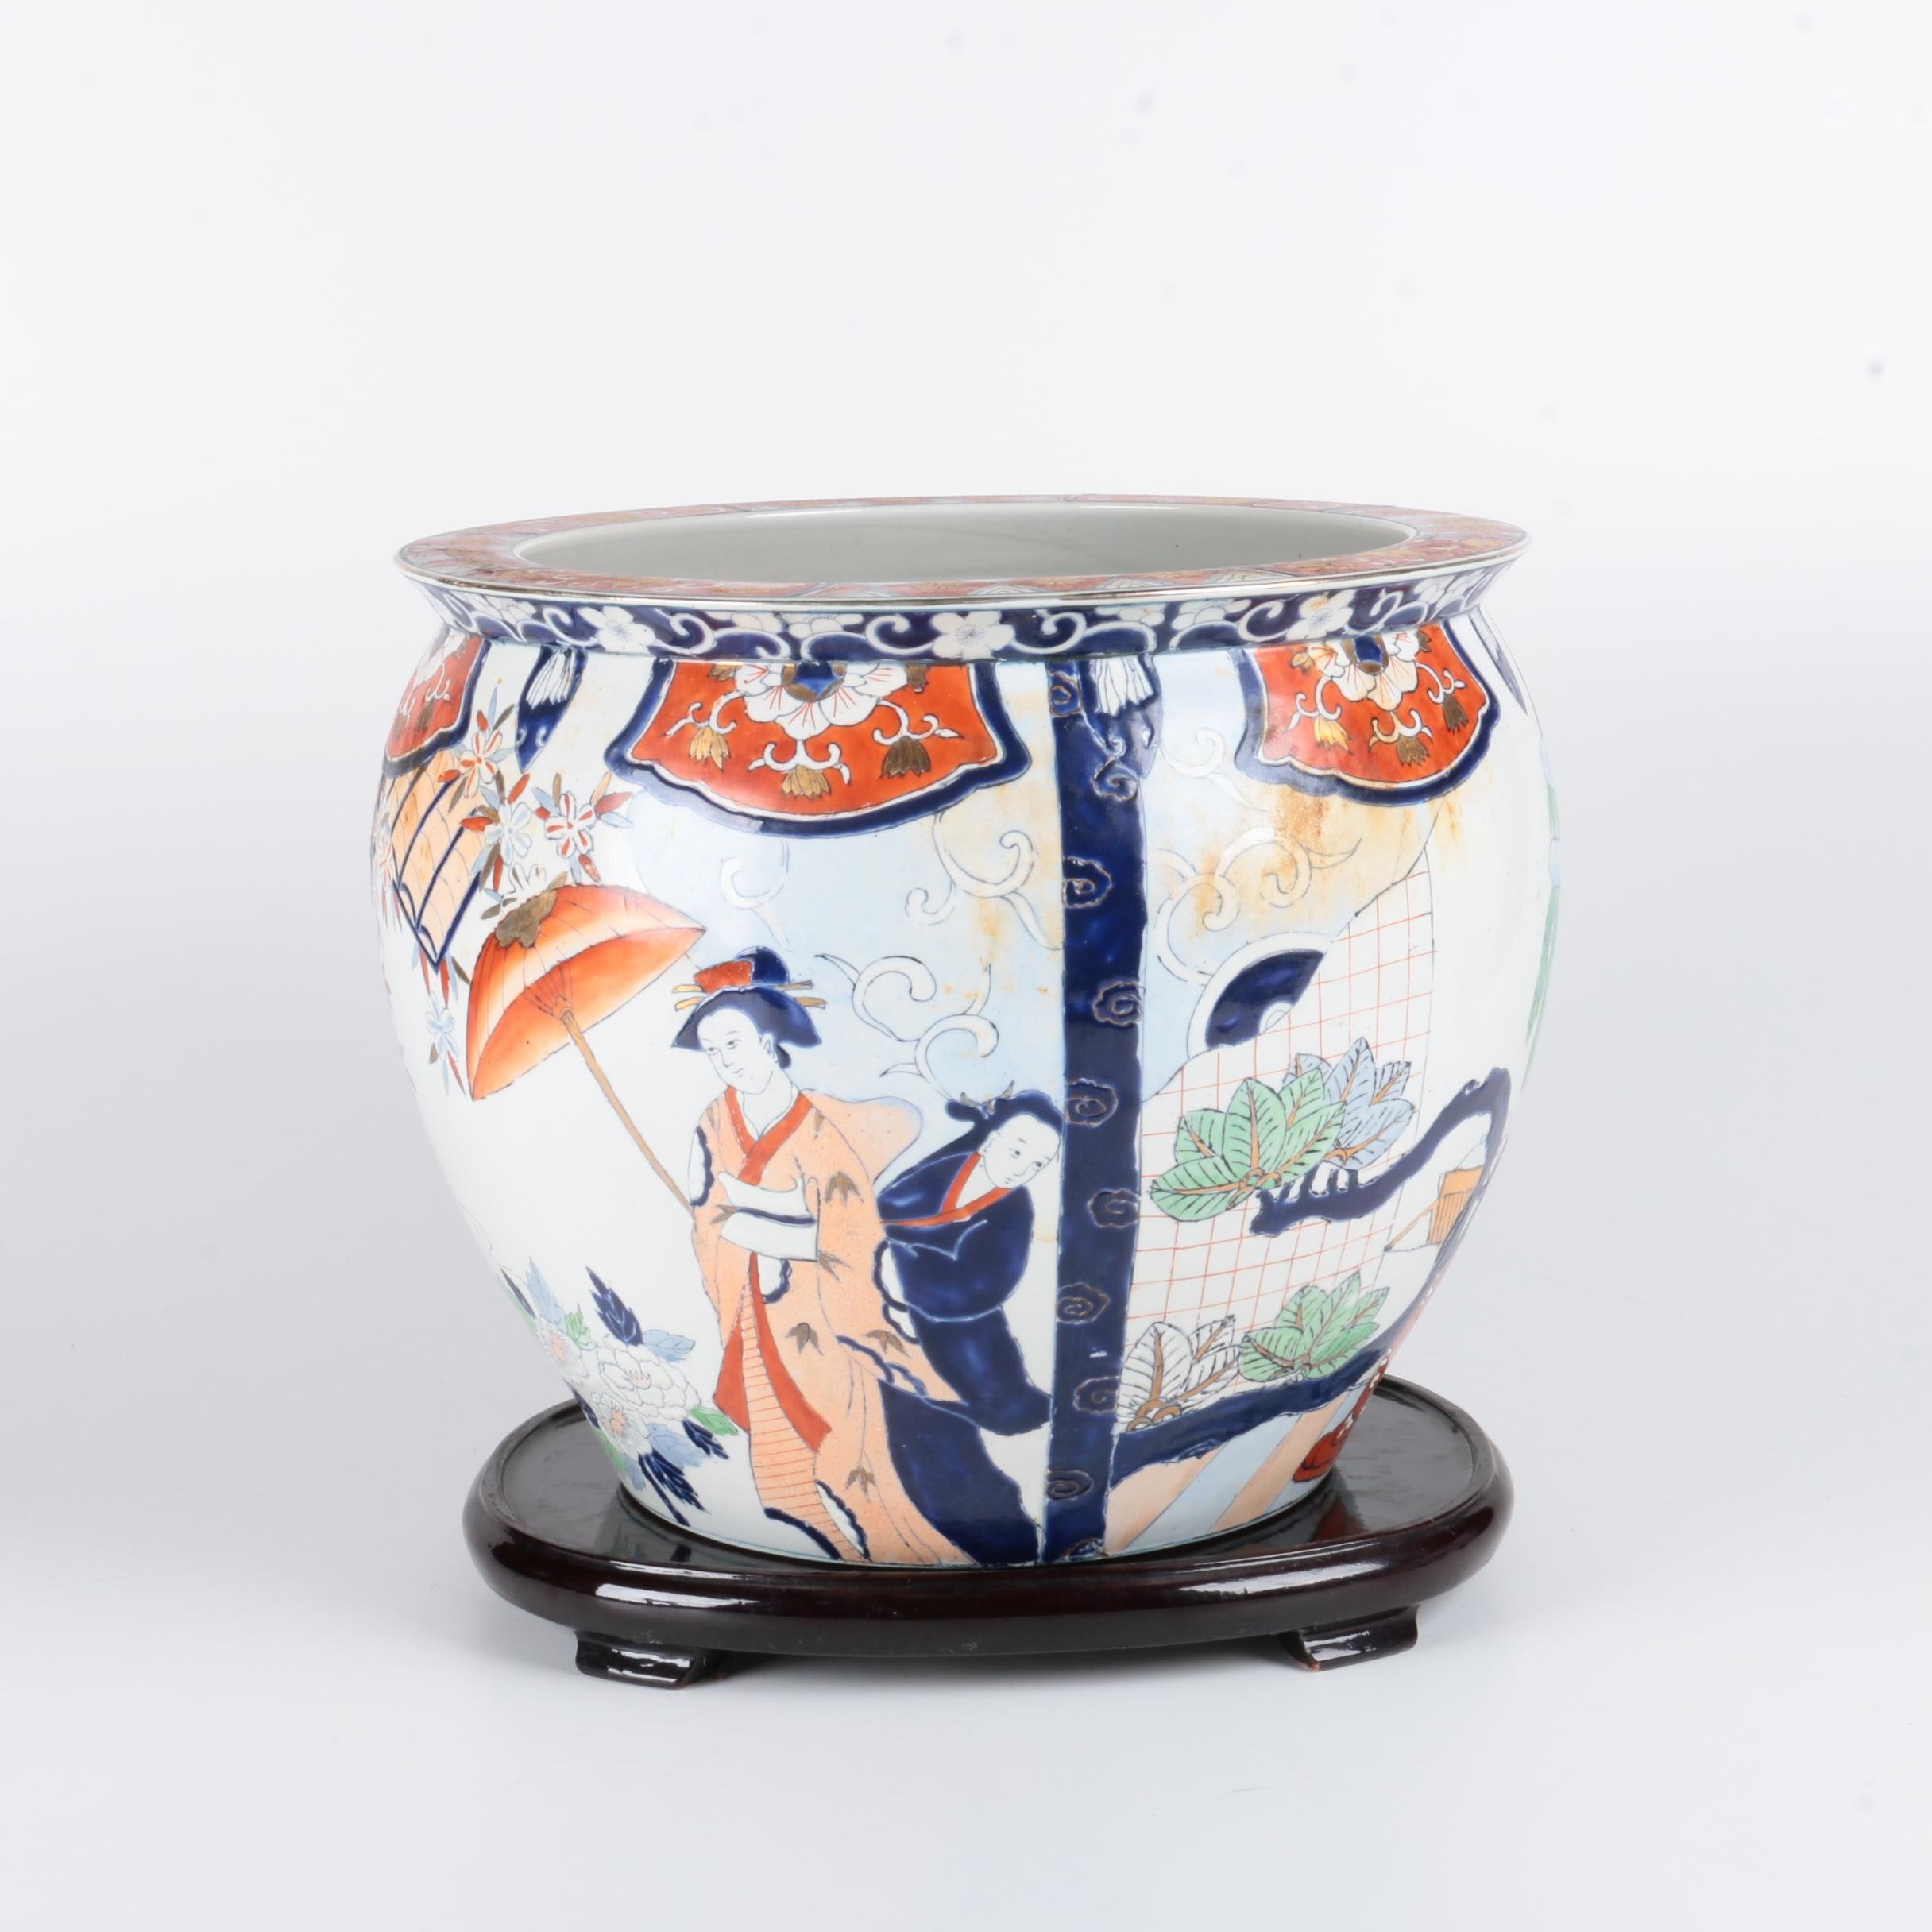 Chinese Ceramic Planter with Wooden Stand